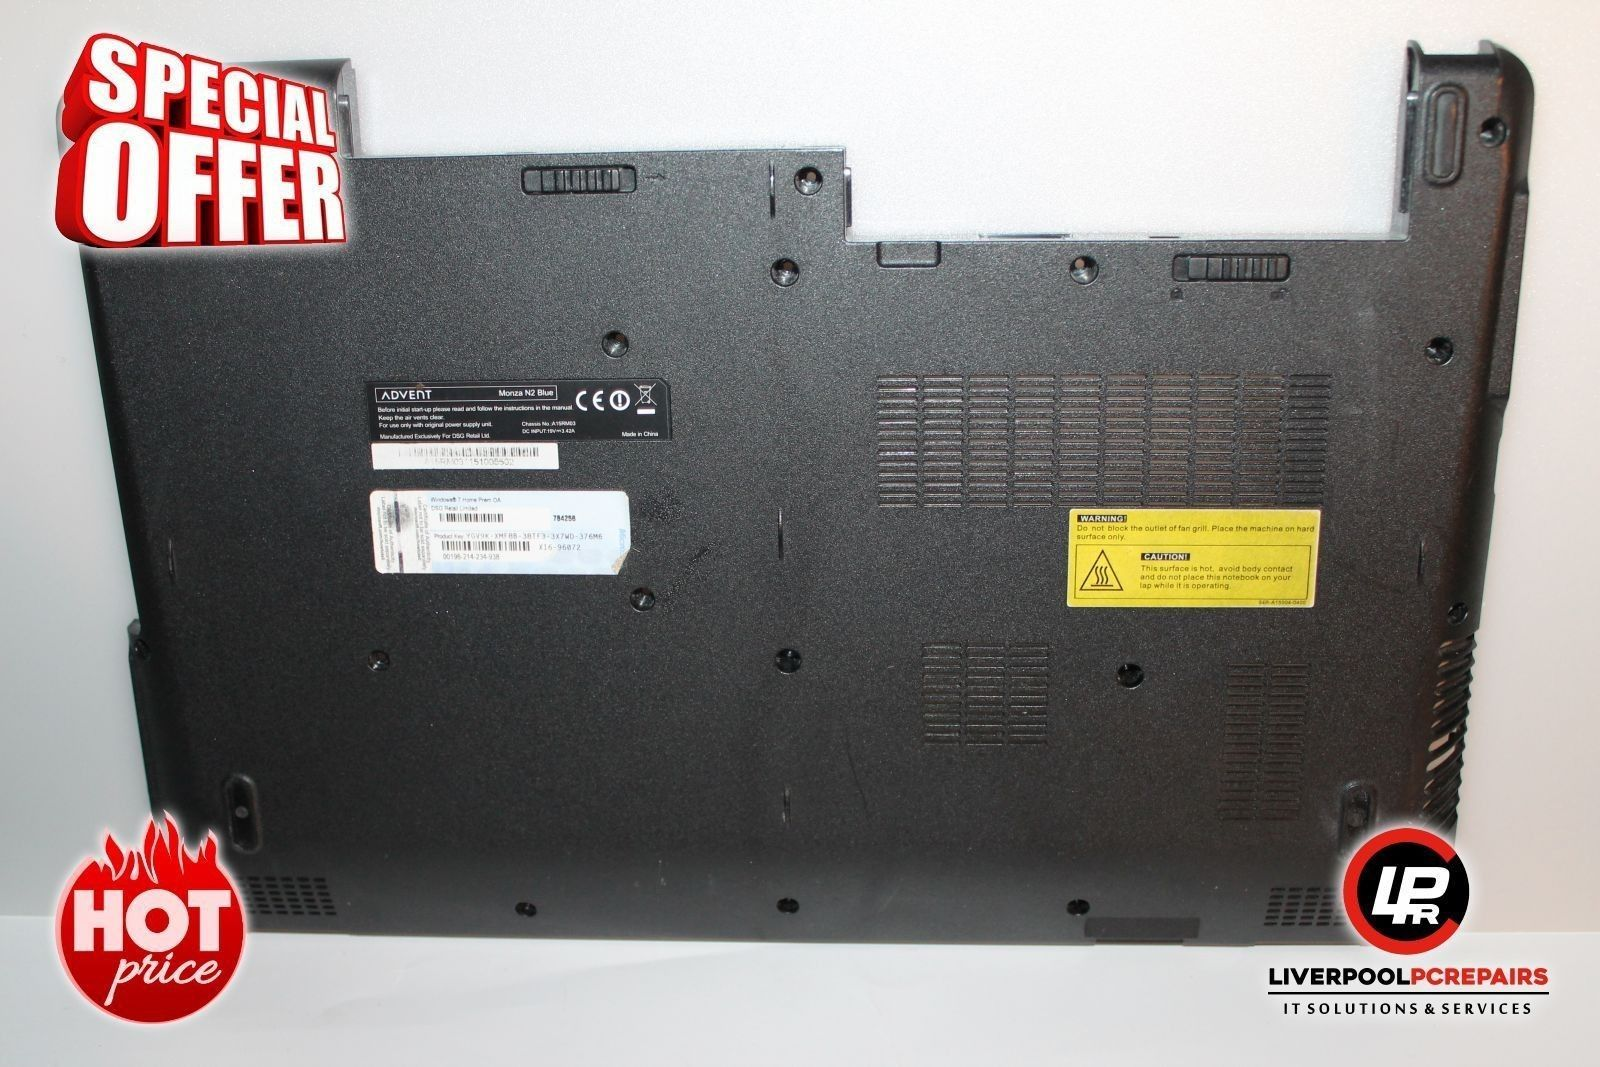 """Item: Advent Monza N2 Bottom Base Cover D0006B5210645 62R-A15D35-3102 """"X841   Postage: Free UK Shipping – Royal Mail 1st Class Item Price: £9.90   Warranty: 30 Day Money BackGuarantee Buy on eBay: ebay.liverpoolpcrepairs.com   Protection: eBay Money Back Guarantee Item..."""